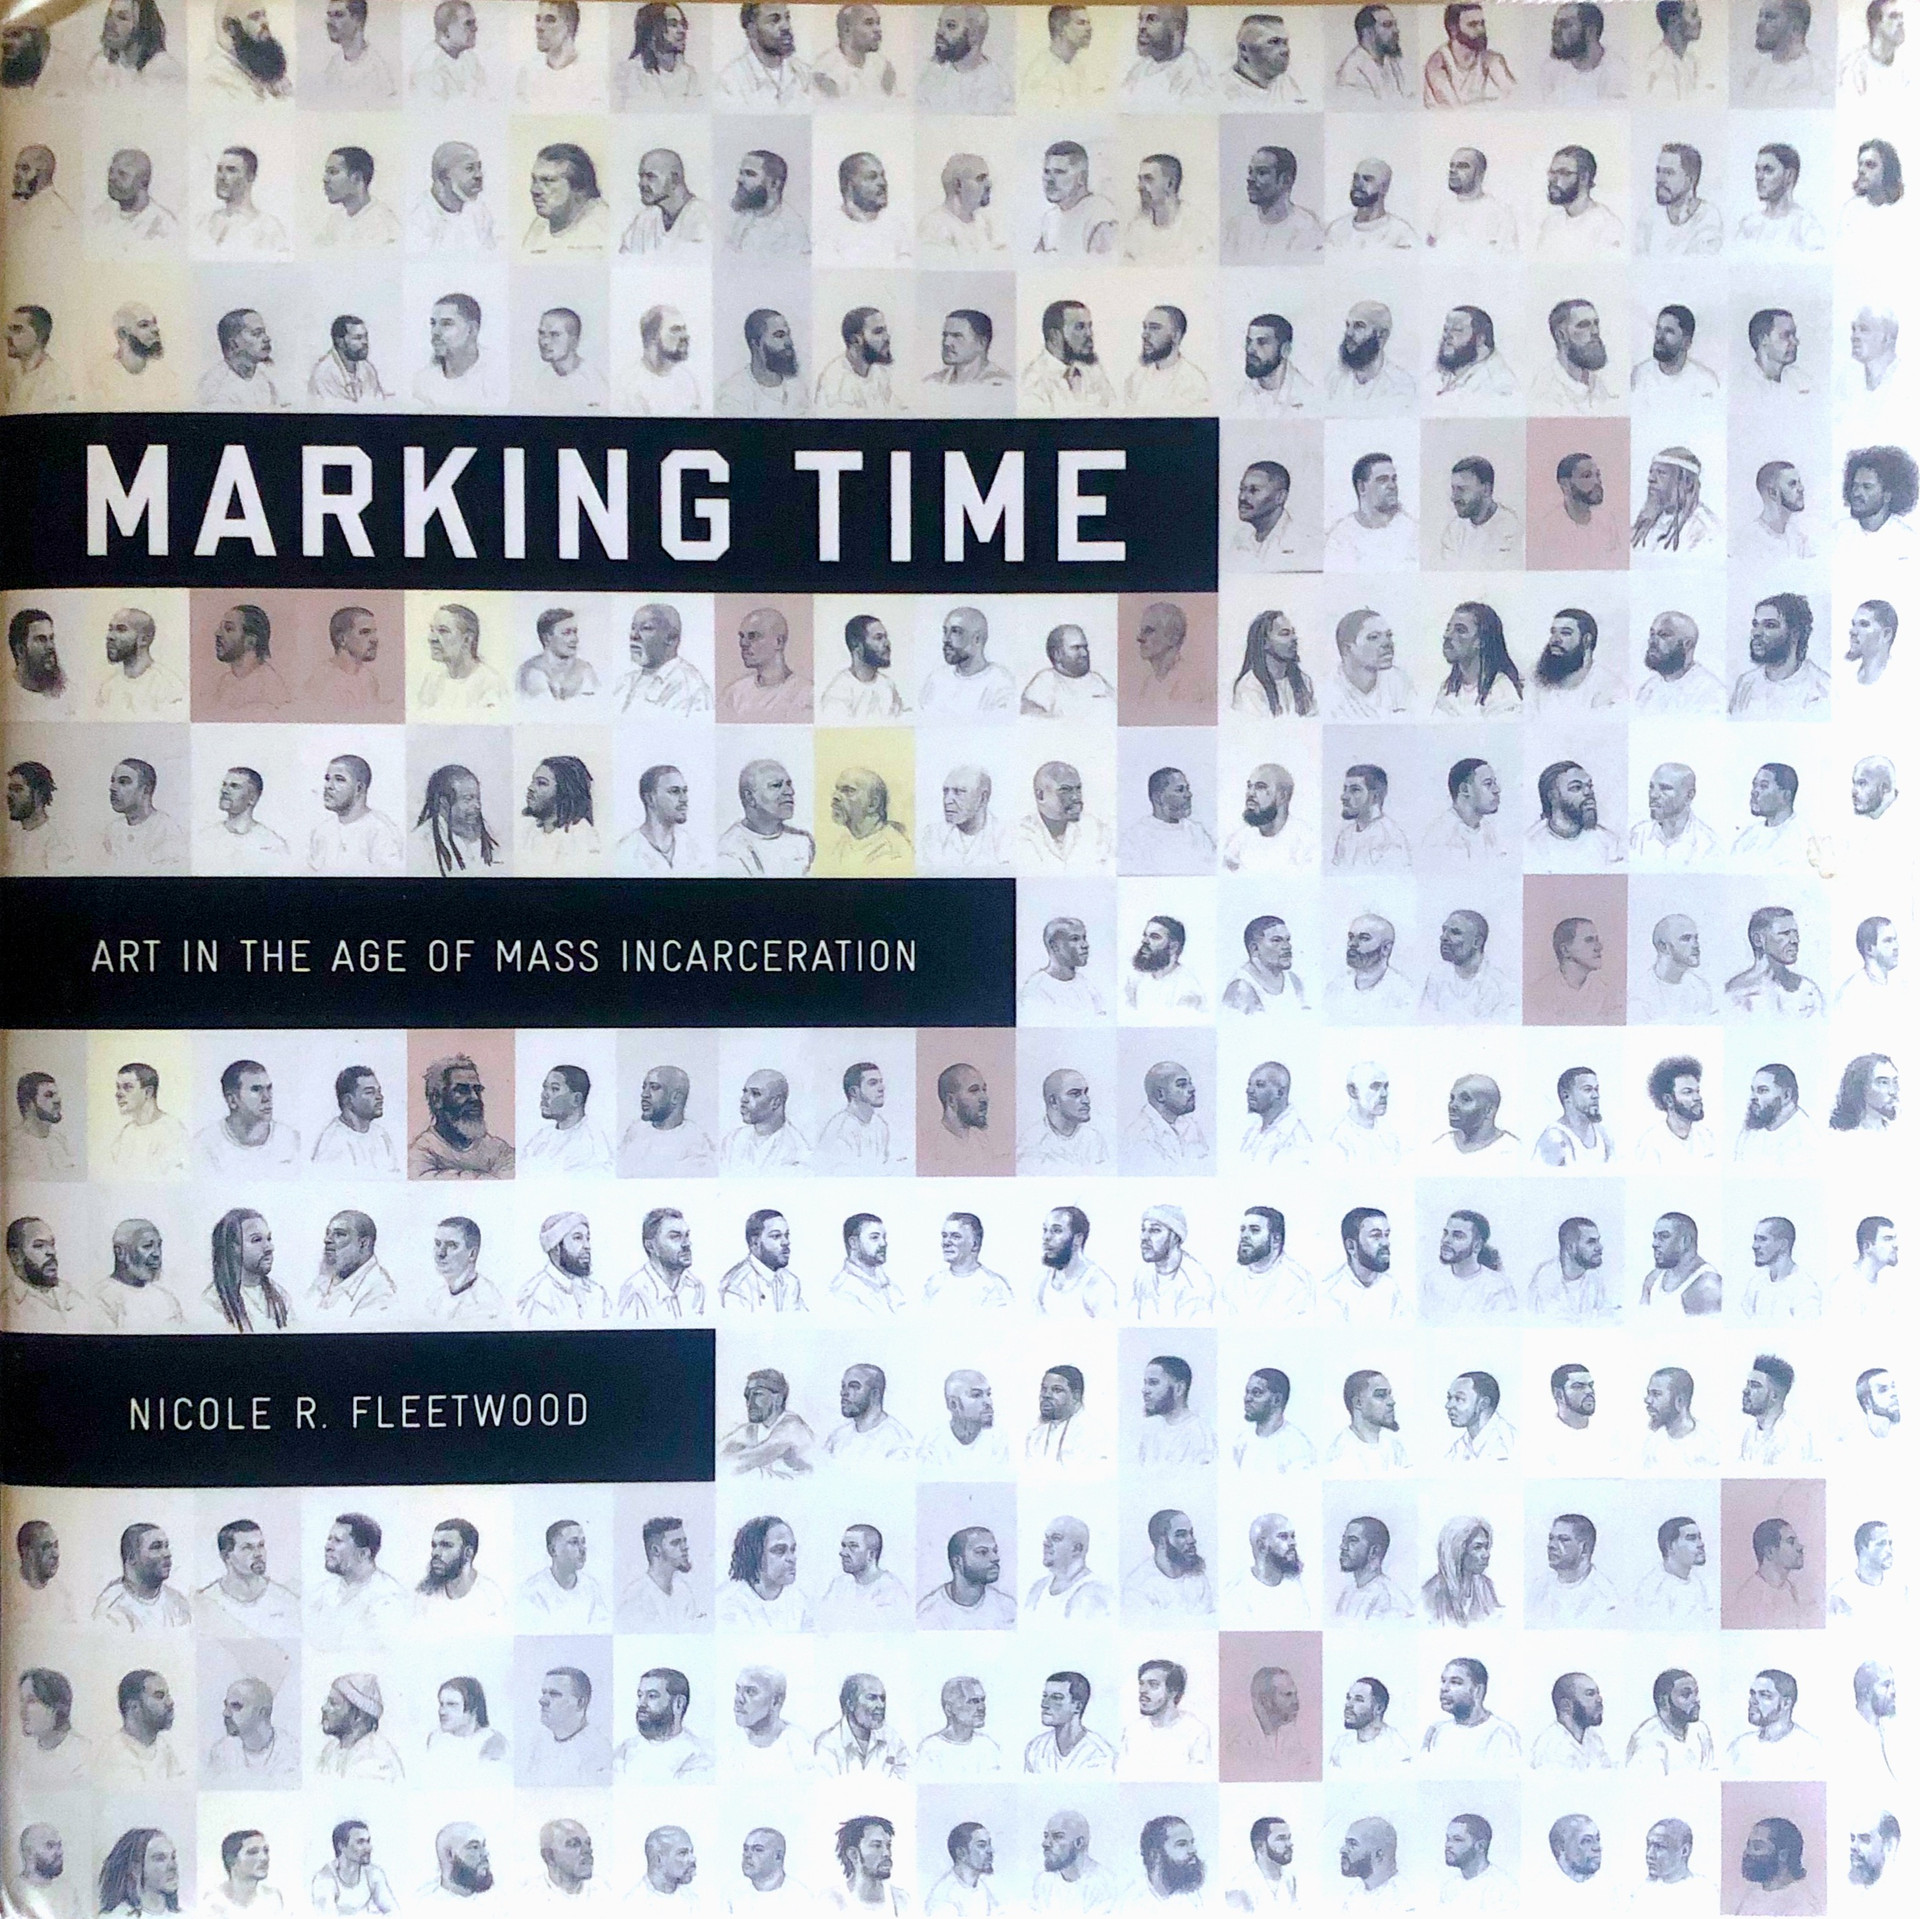 Harvard Press_Marking Time: Art in the Age of Mass Incarceration